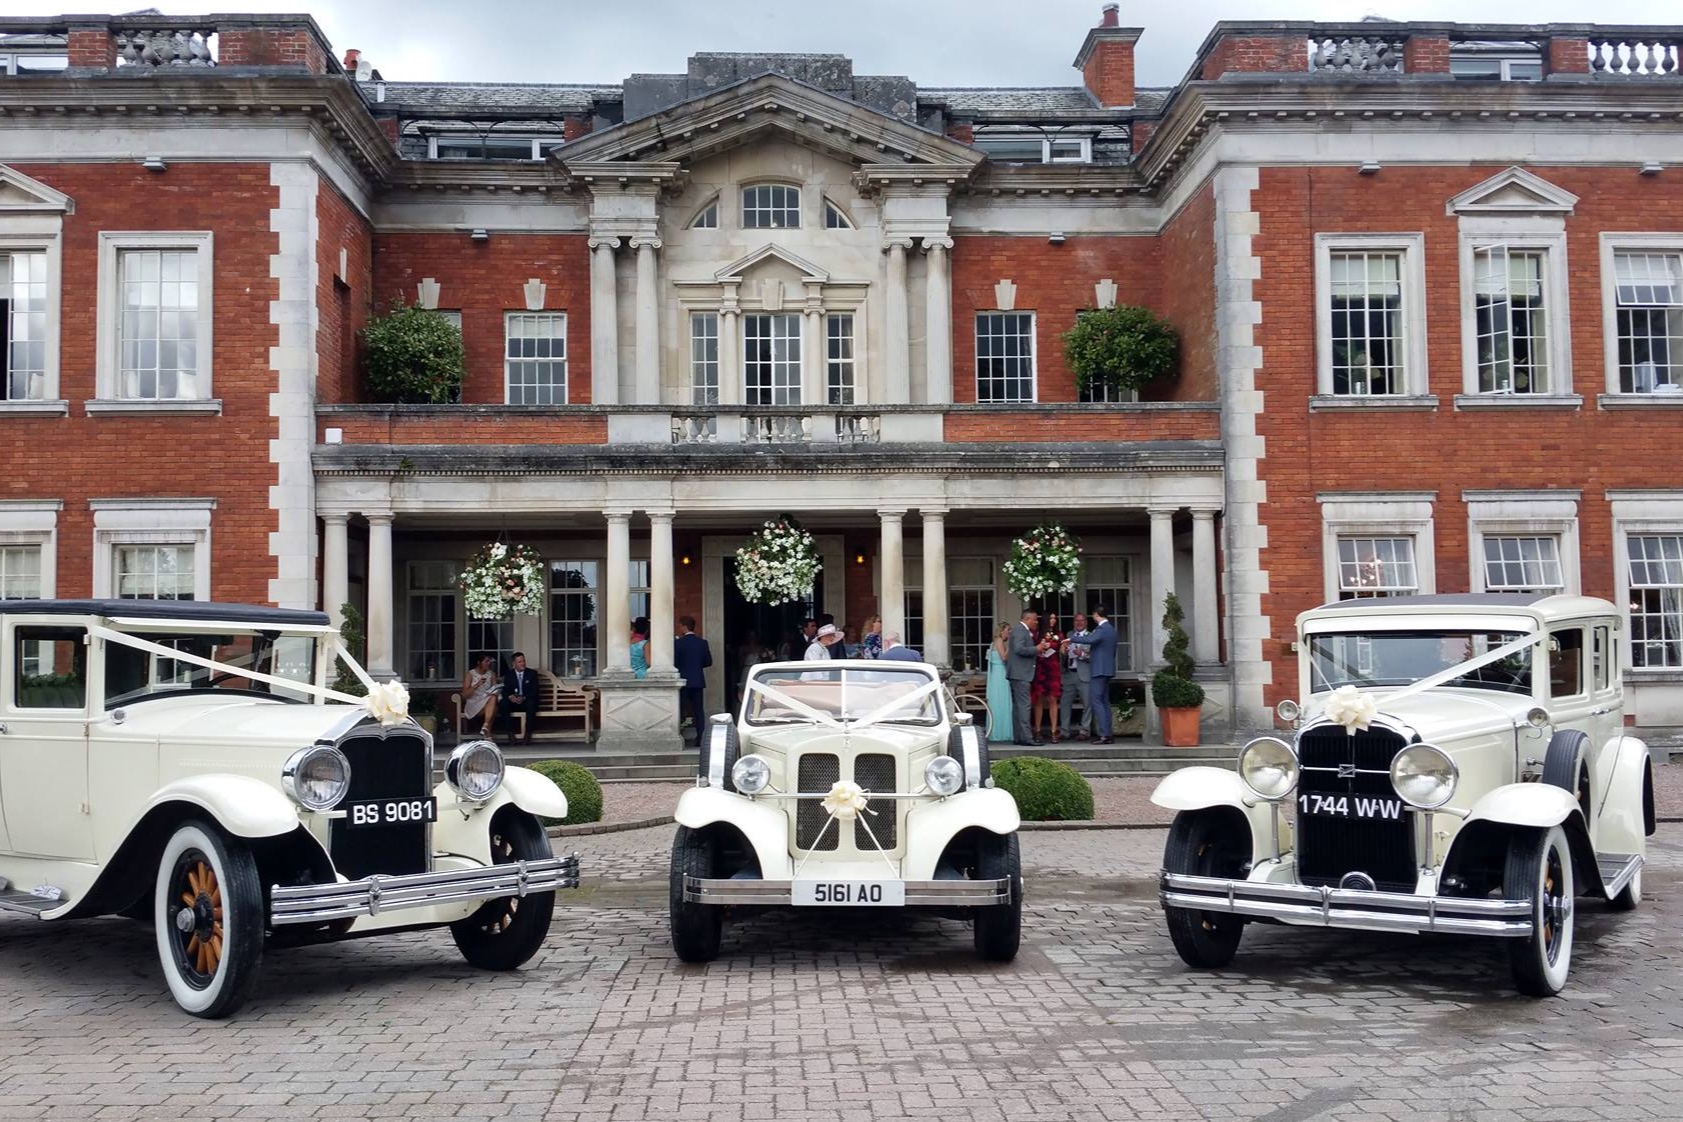 Special WeddingCars - What better way to travel to your wedding than in magnificent style like true royalty? Special Wedding Cars offer an excellent chauffeur service to your venue.